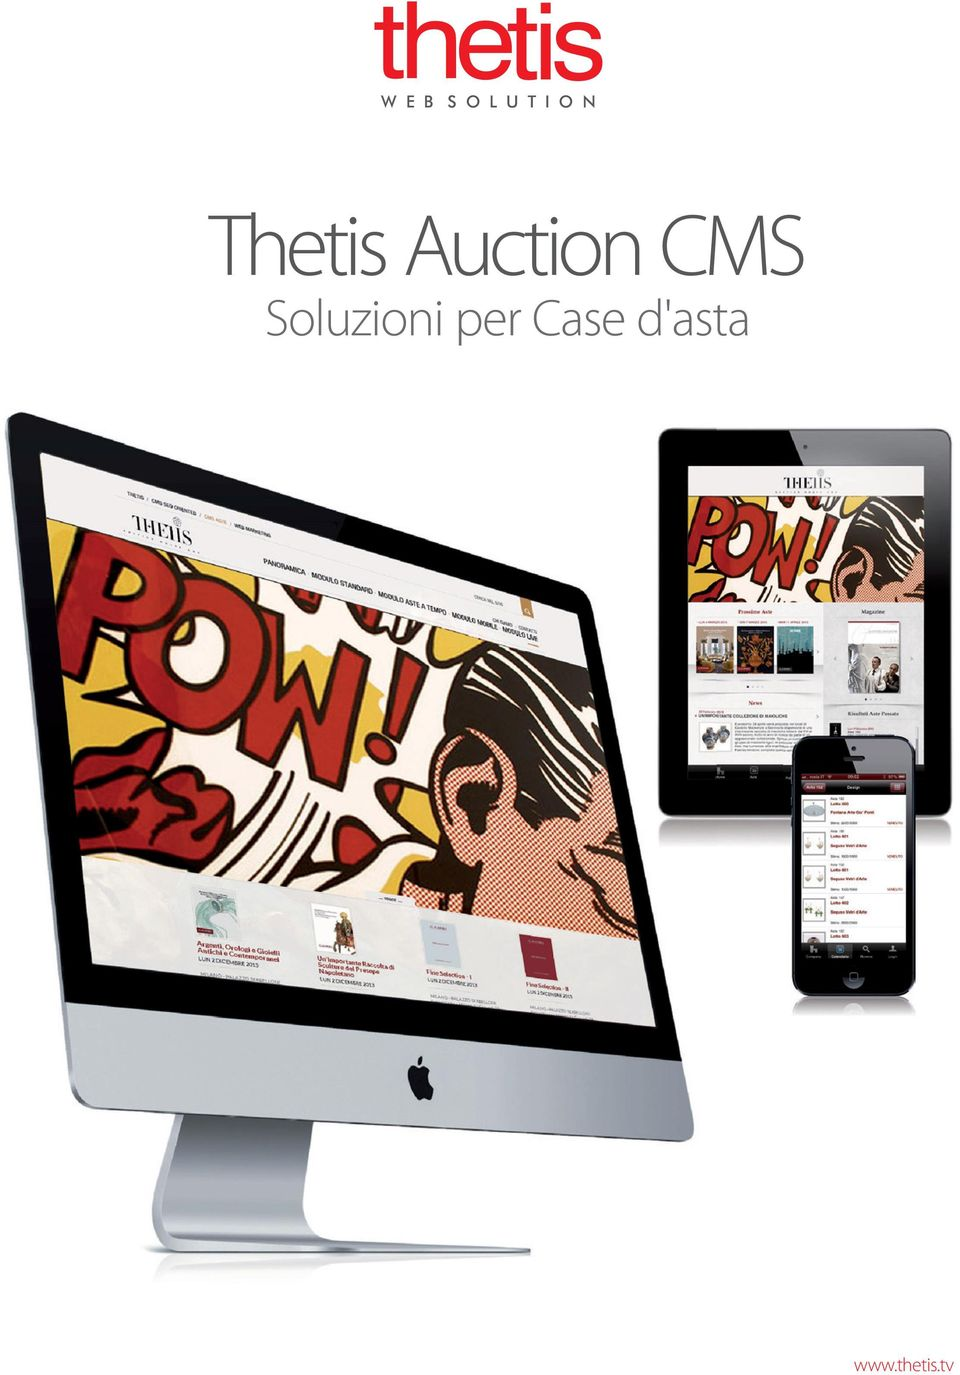 I O N Thetis Auction CMS